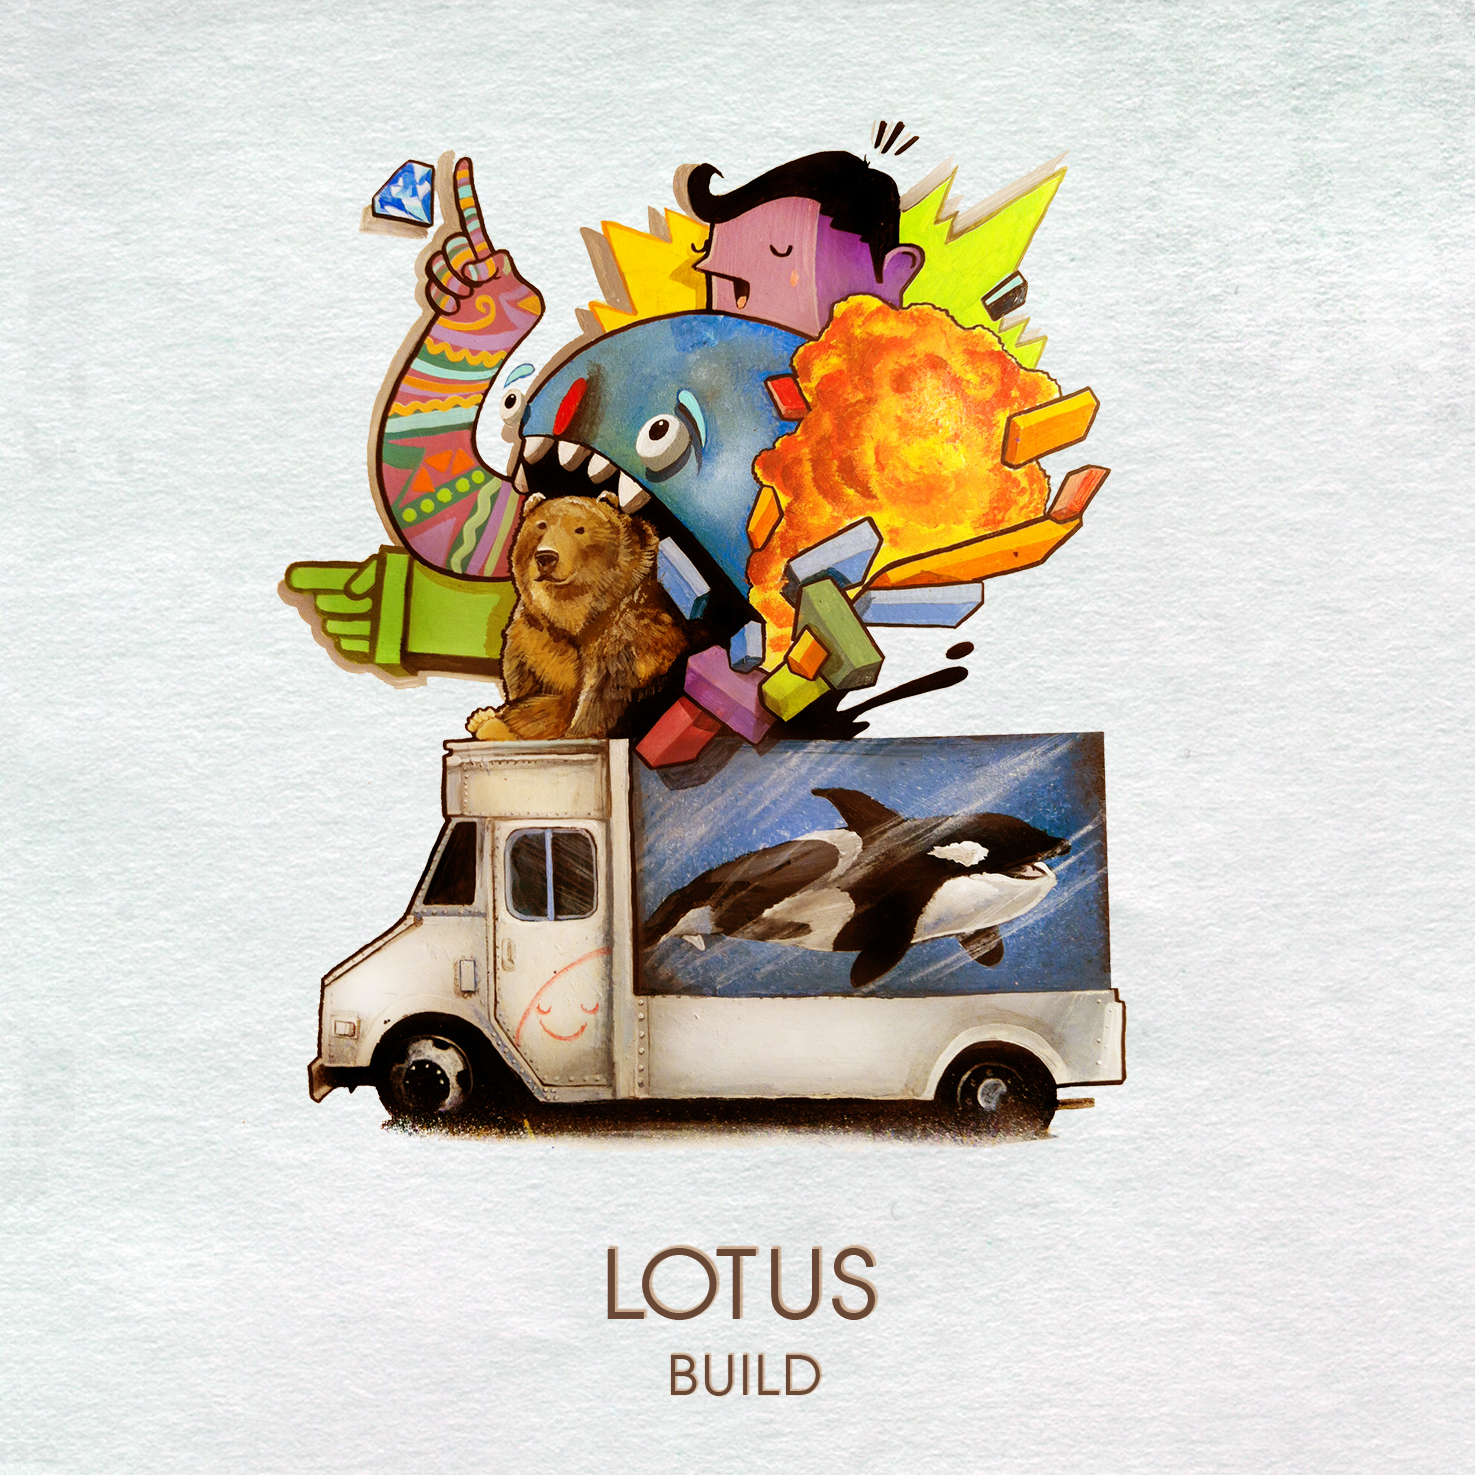 Lotus - Build